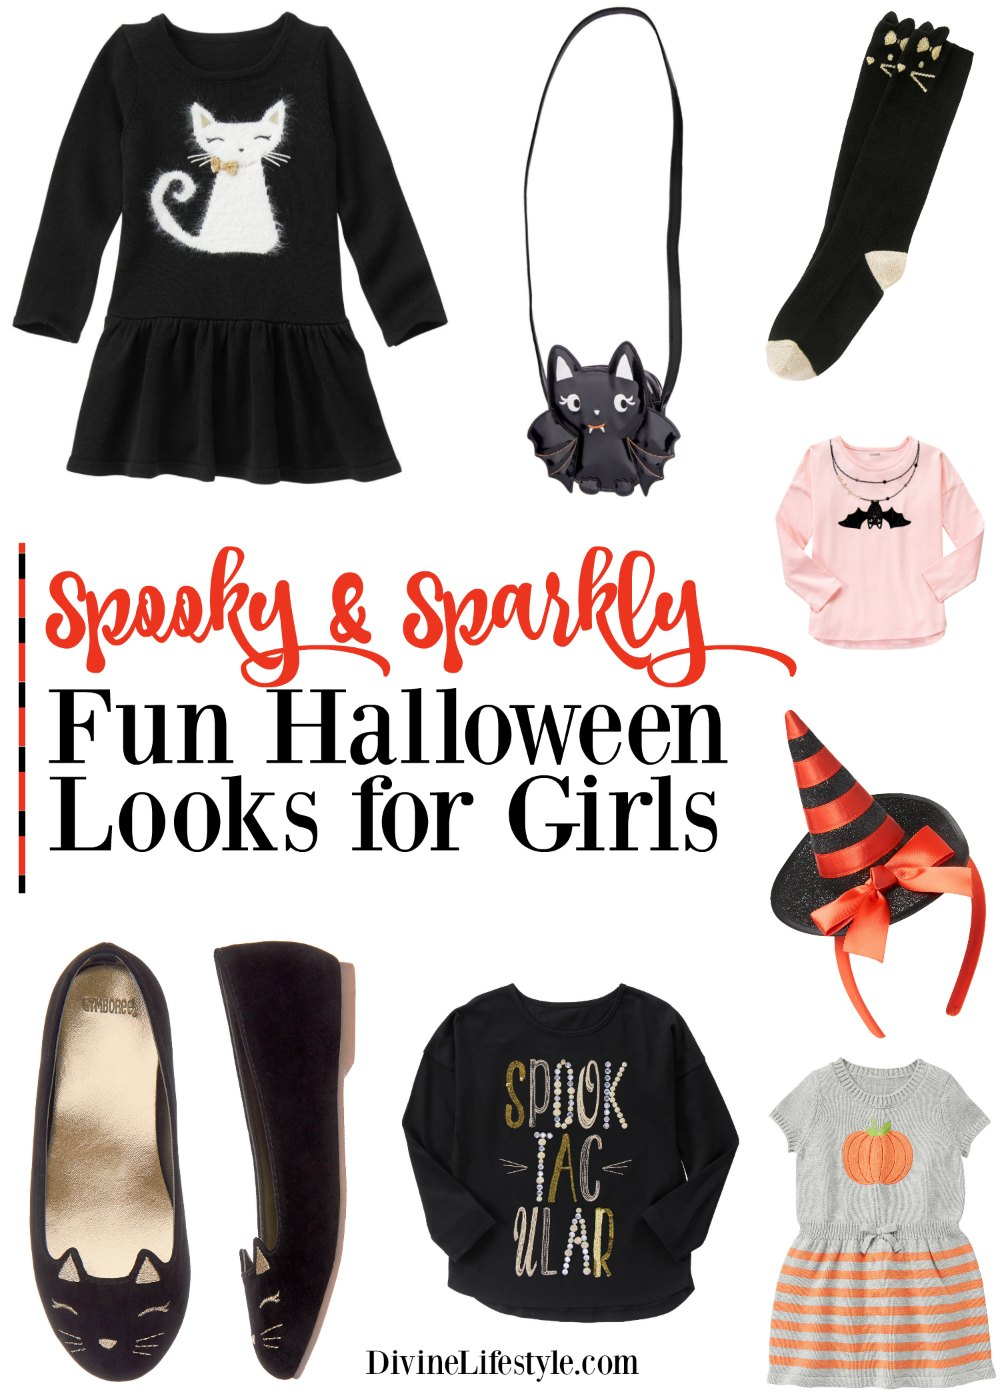 Spooky & Sparkly Halloween Looks for Girls from Gymboree